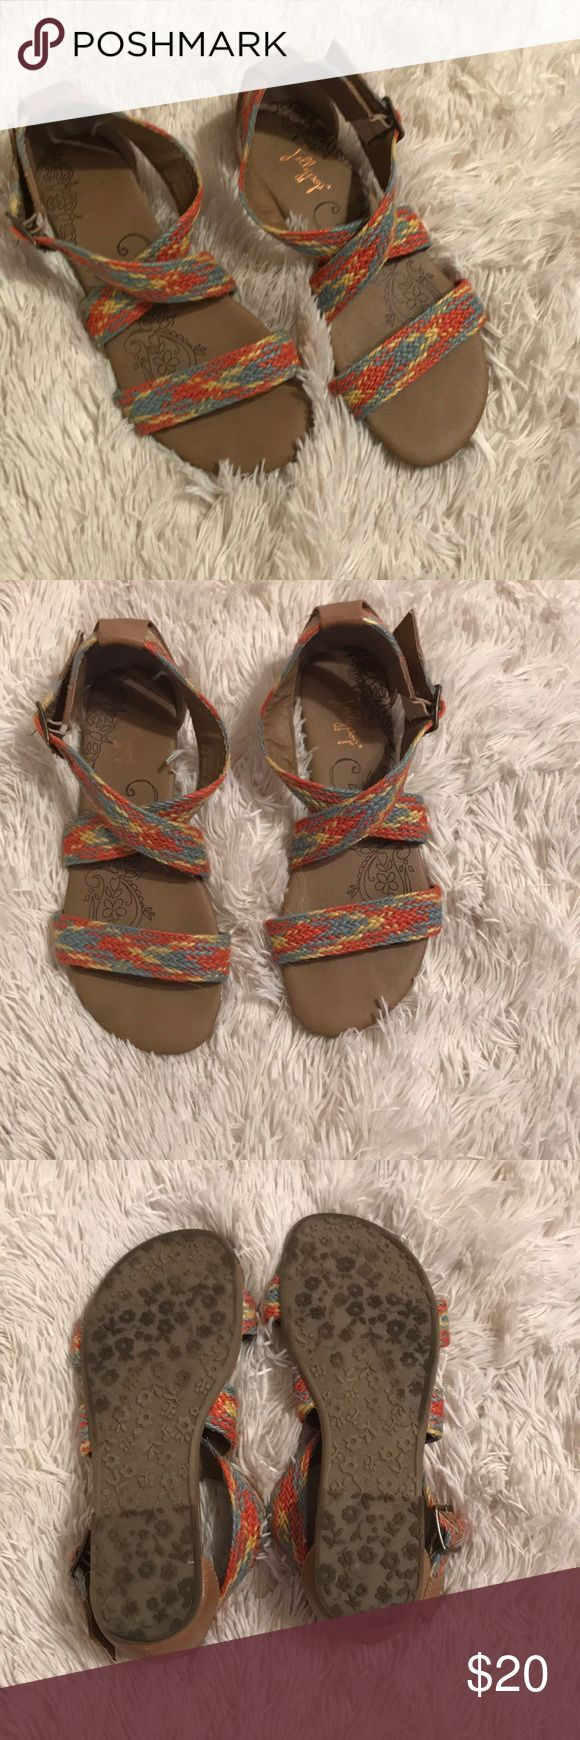 JellyPop multi colored sandals These sandals are so comfortable and cute and have only been worn a handful of times. Straps are a little bent but should shape to your foot with wear 💫 JellyPop Shoes Sandals